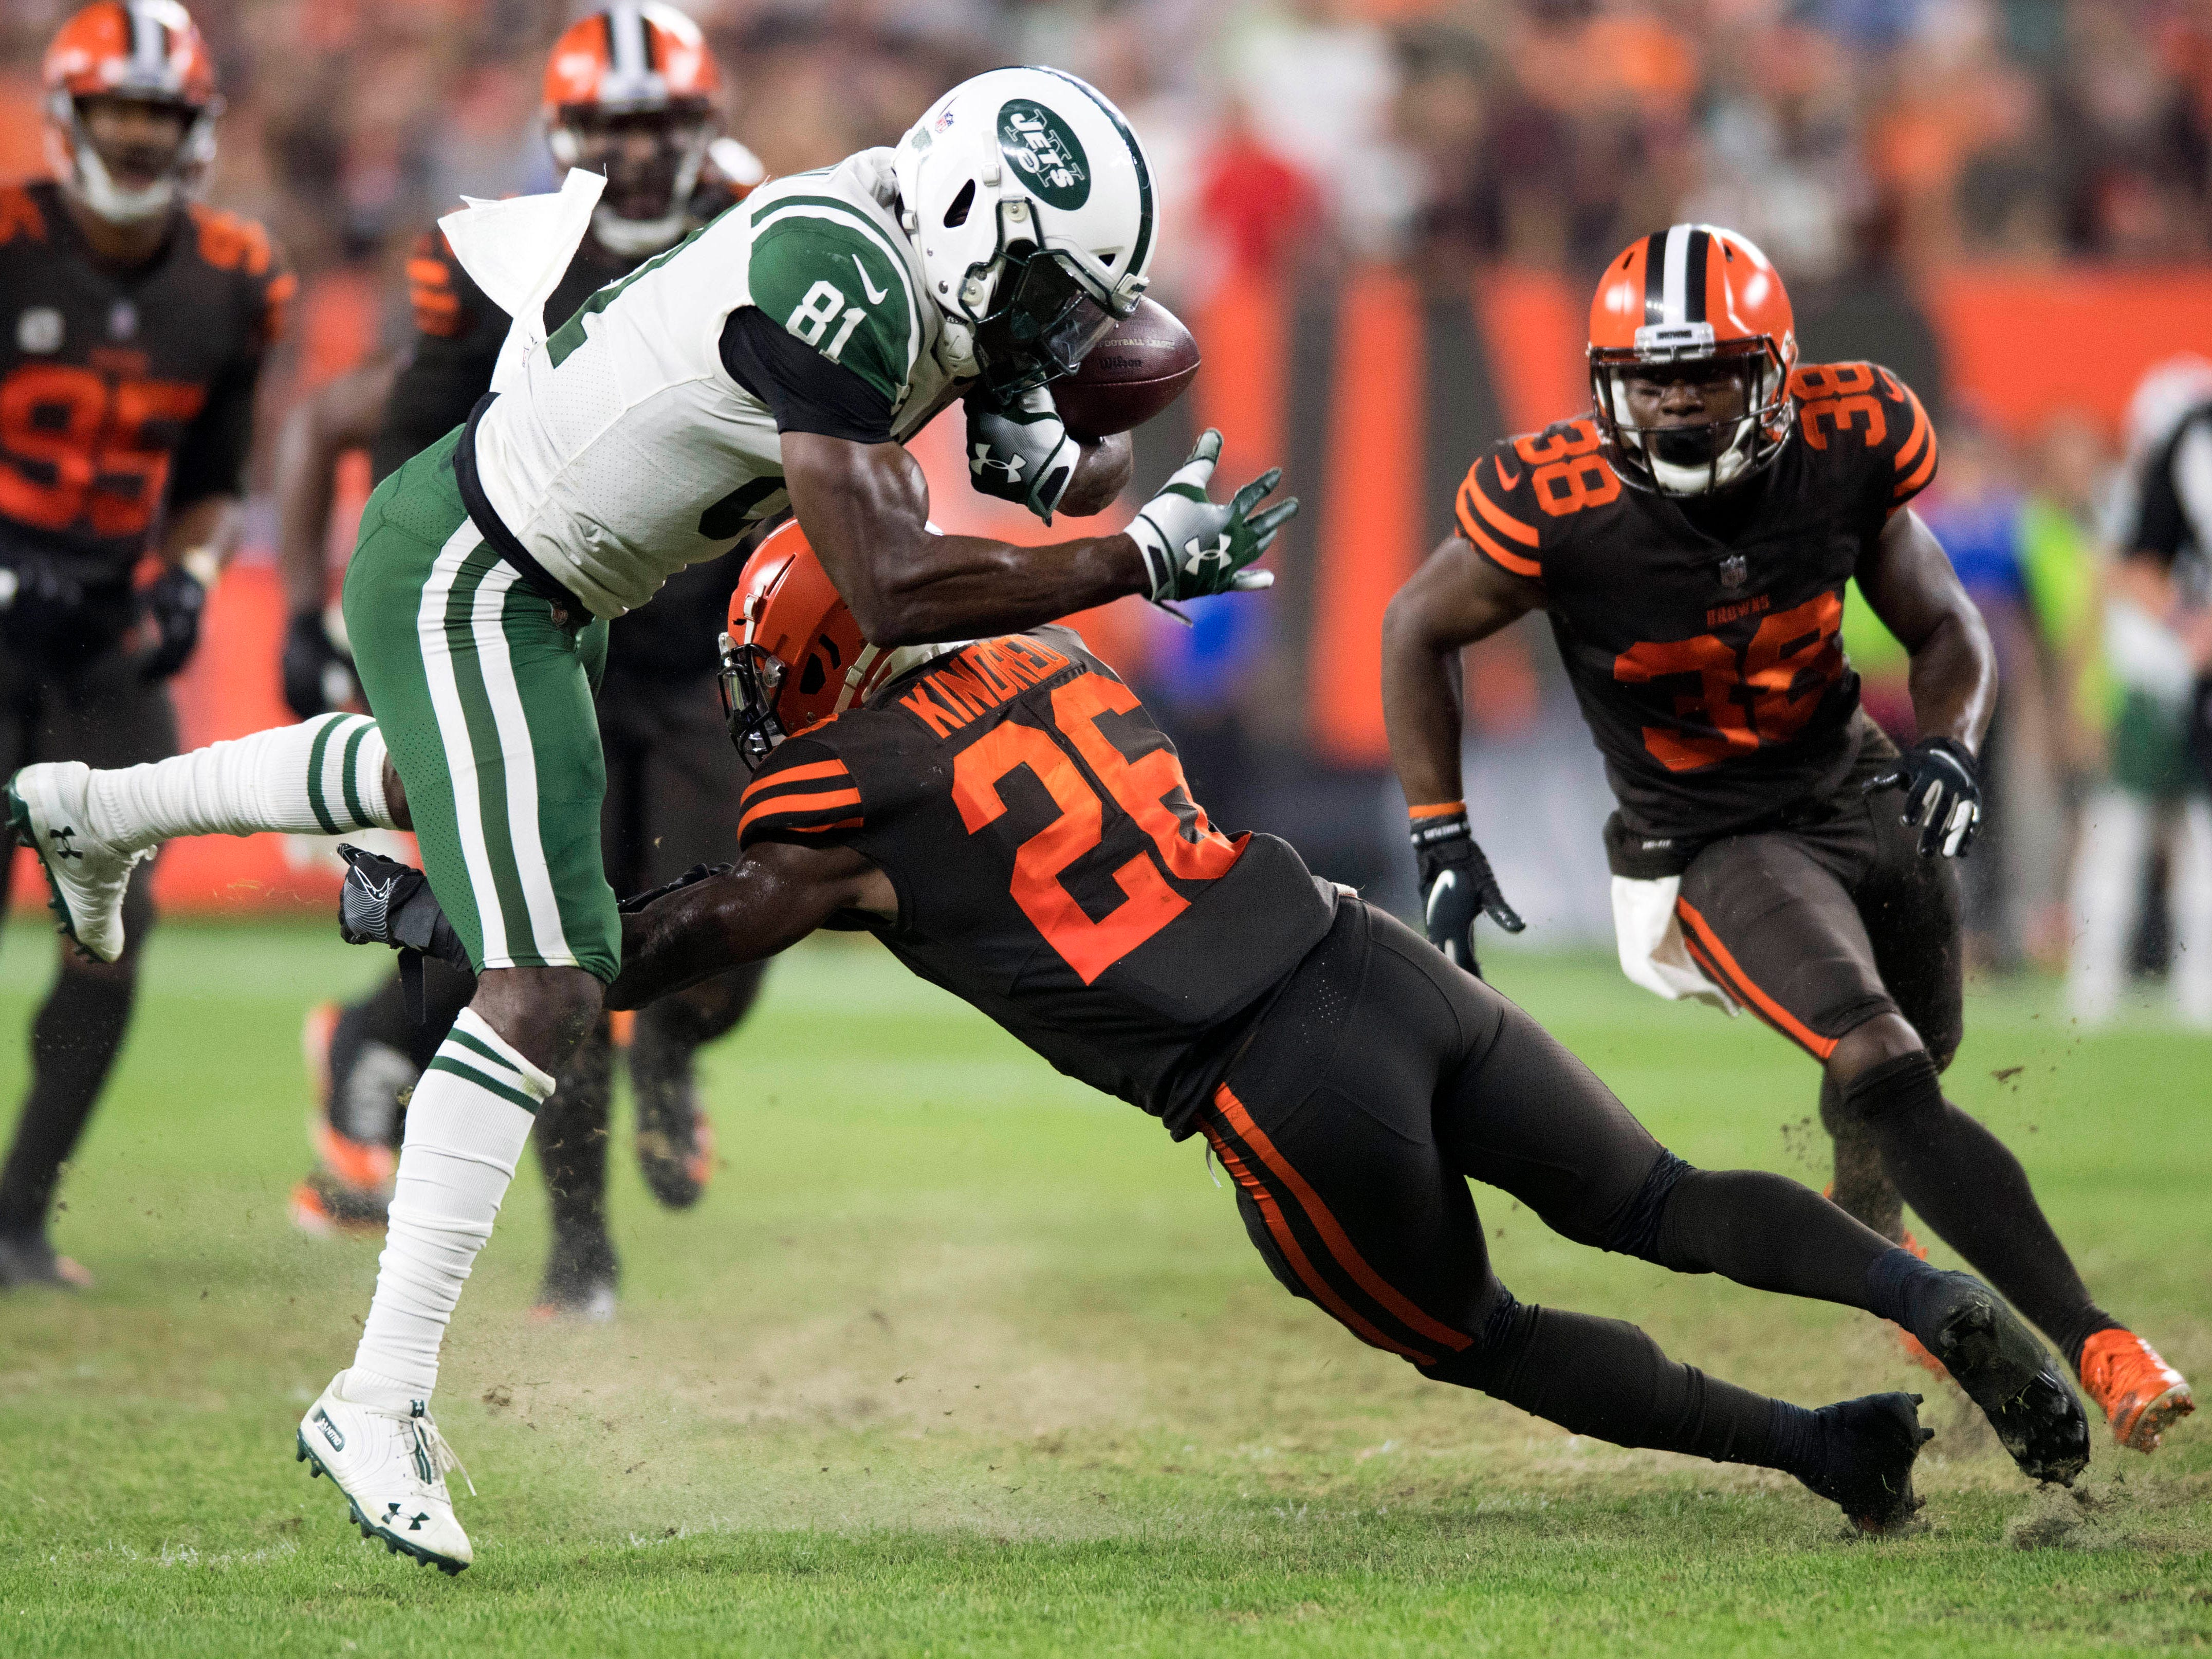 22. Jets (23): They're on pace to finally be rested after opening with three games in 11 days. But will recharge be enough against salty Jags in Week 4?